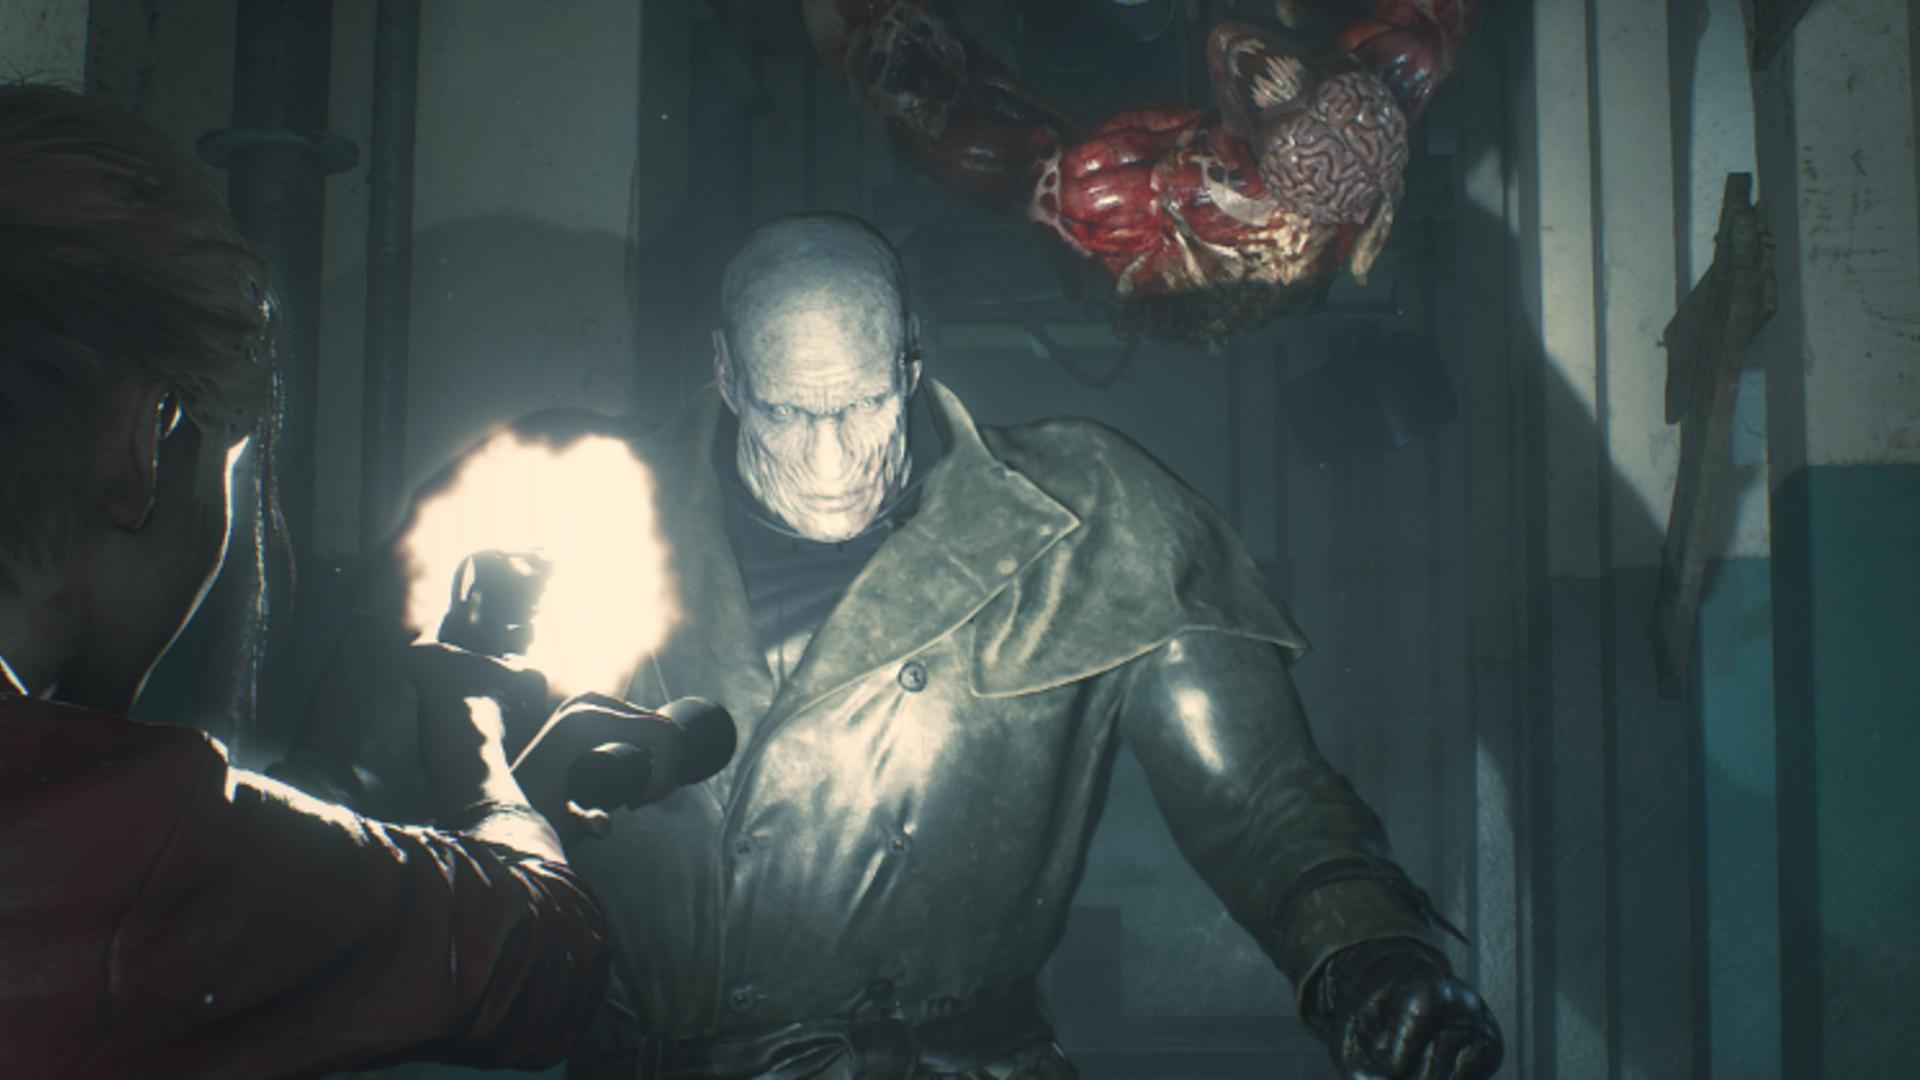 Capcom Resident Evil 2 remake cheat the undead zombies until Mr. X shows up